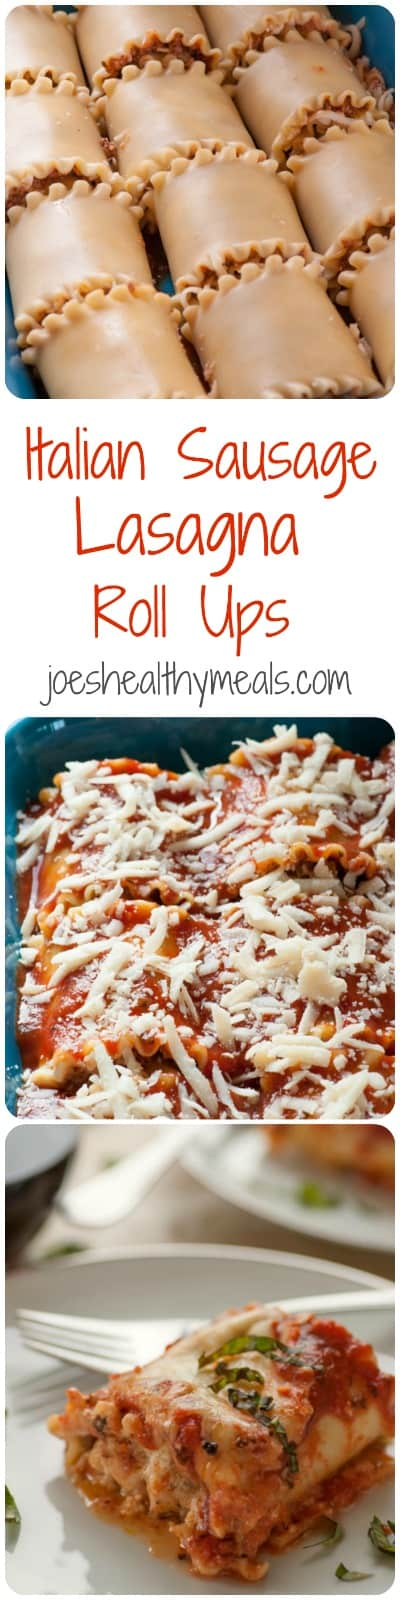 Italian sausage lasagna roll ups. Everyone loves lasagna and these roll ups are wonderfully delicious. | joeshealthymeals.com